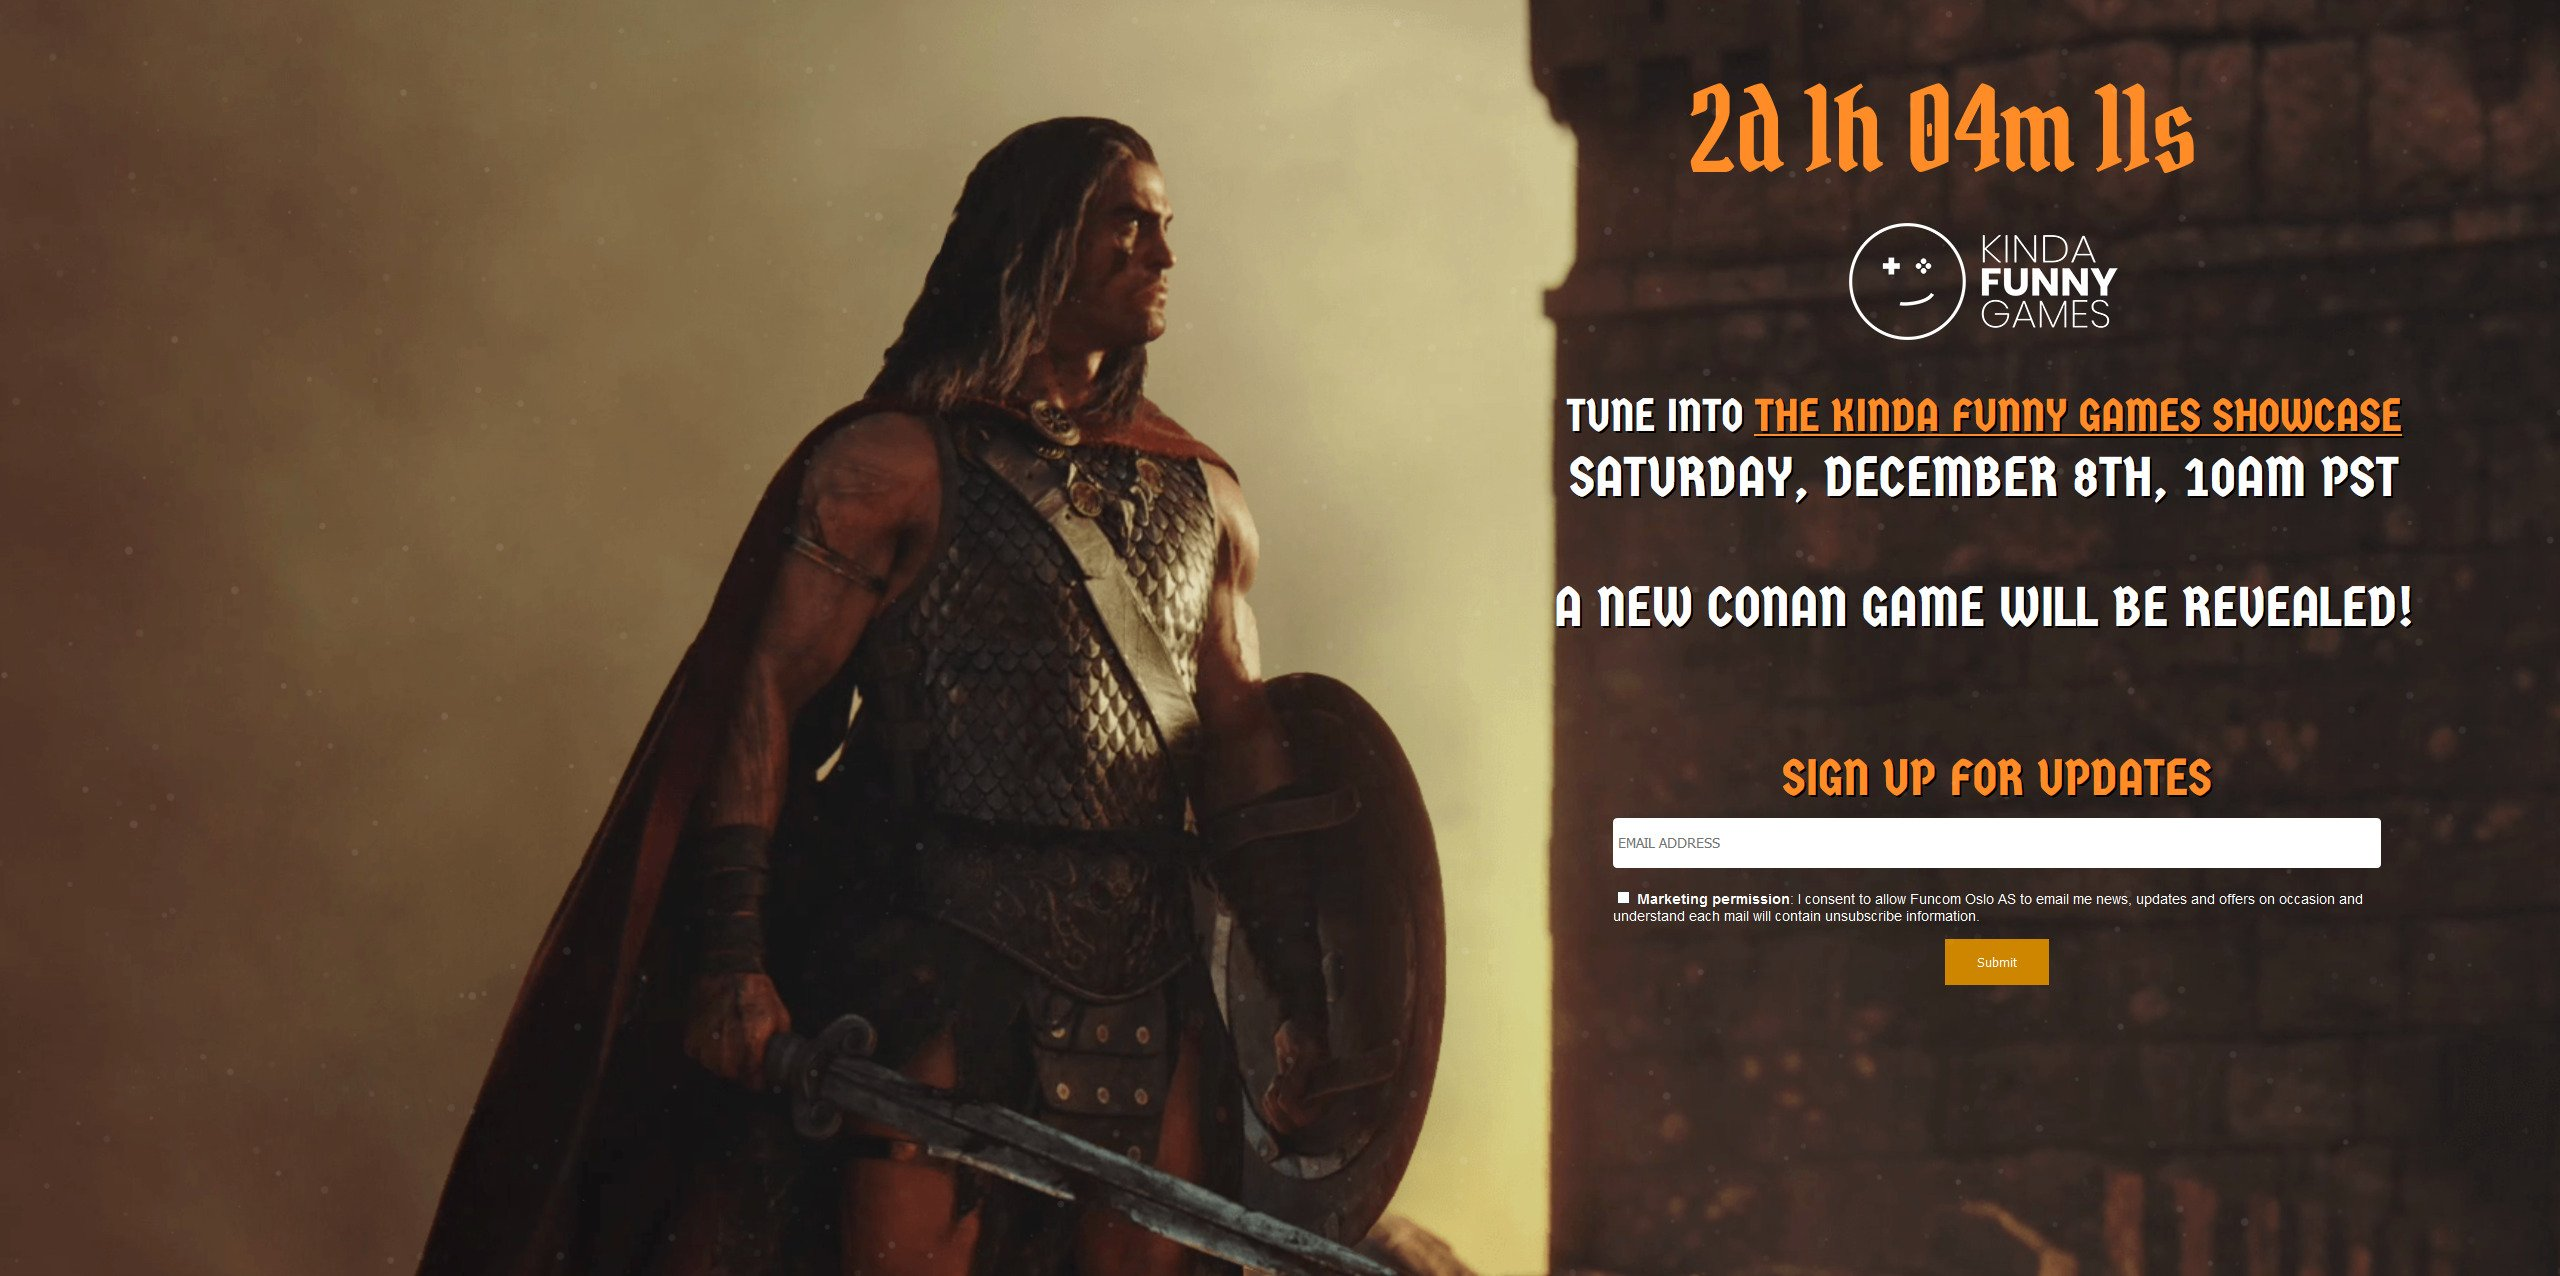 New Conan Game Countdown